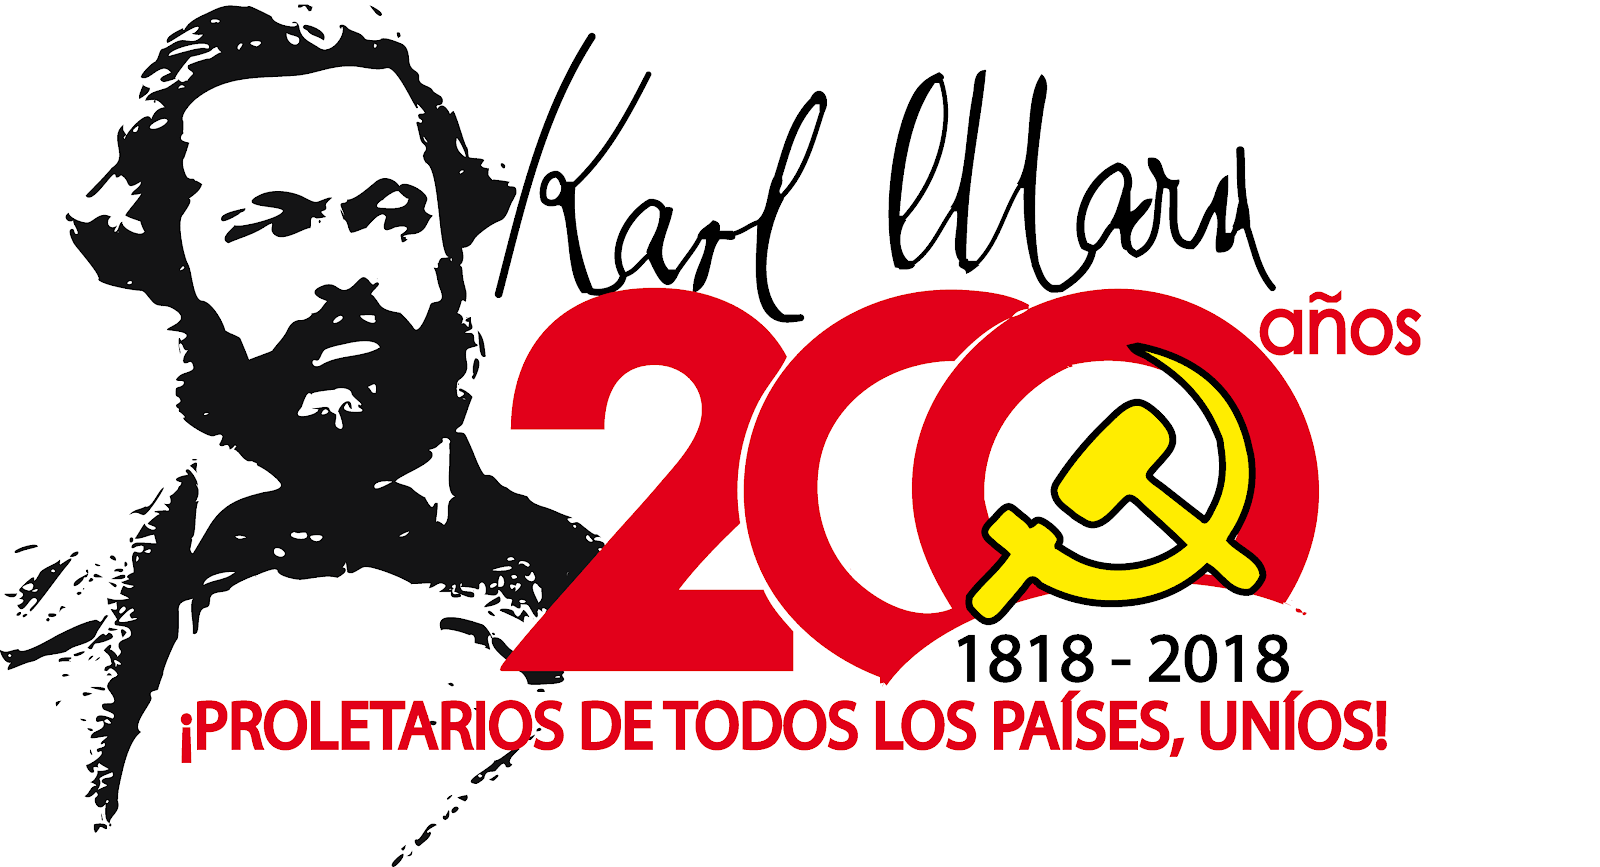 200 años de Carlos Marx